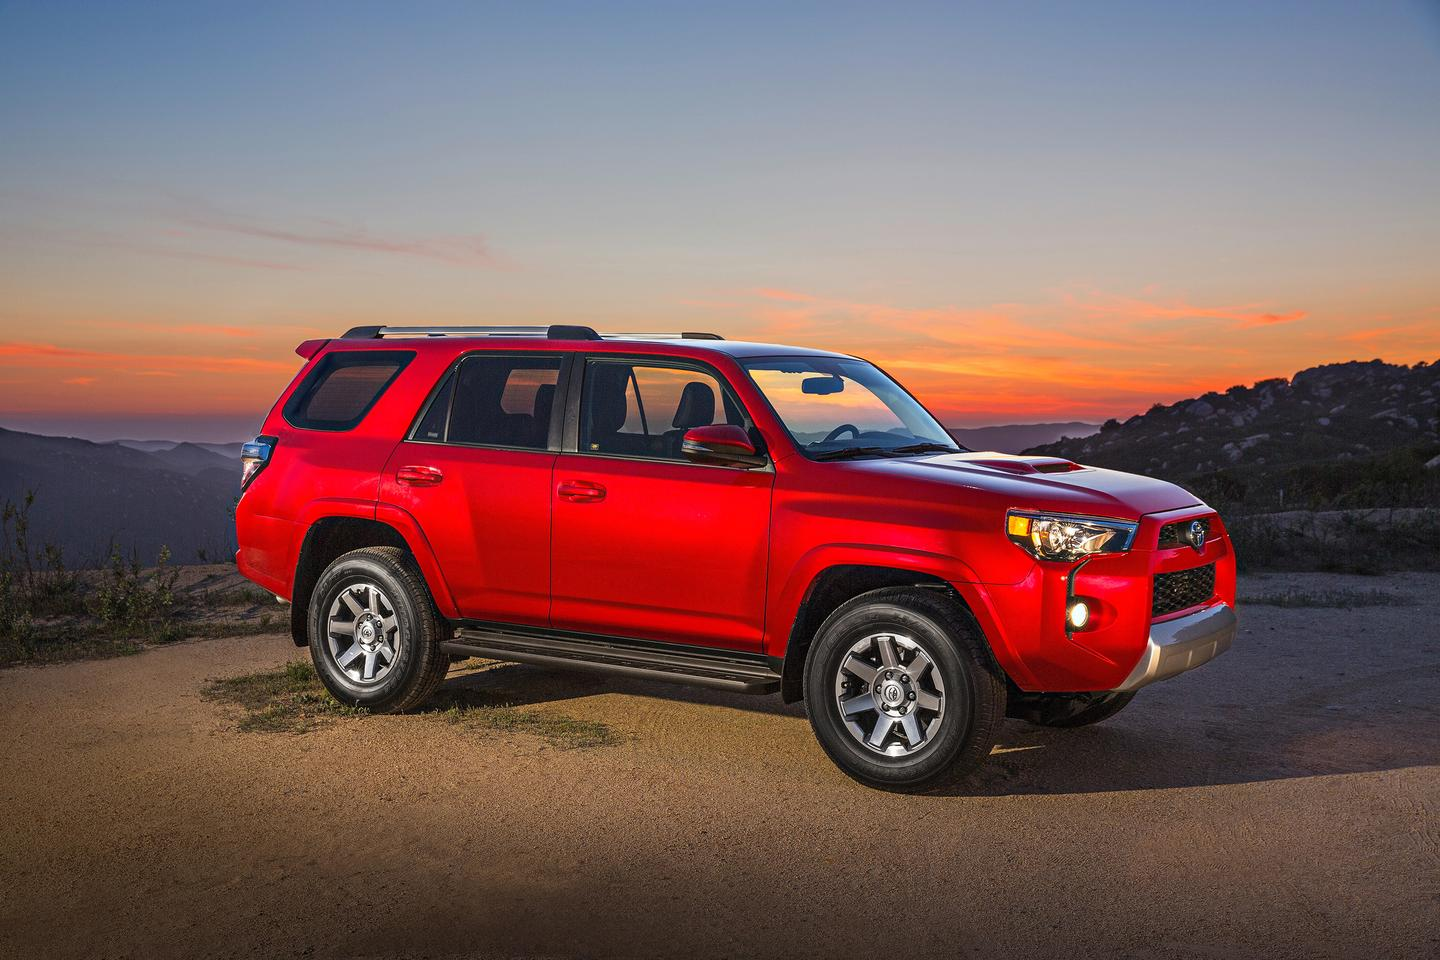 The 2014 4Runner gets a facelift